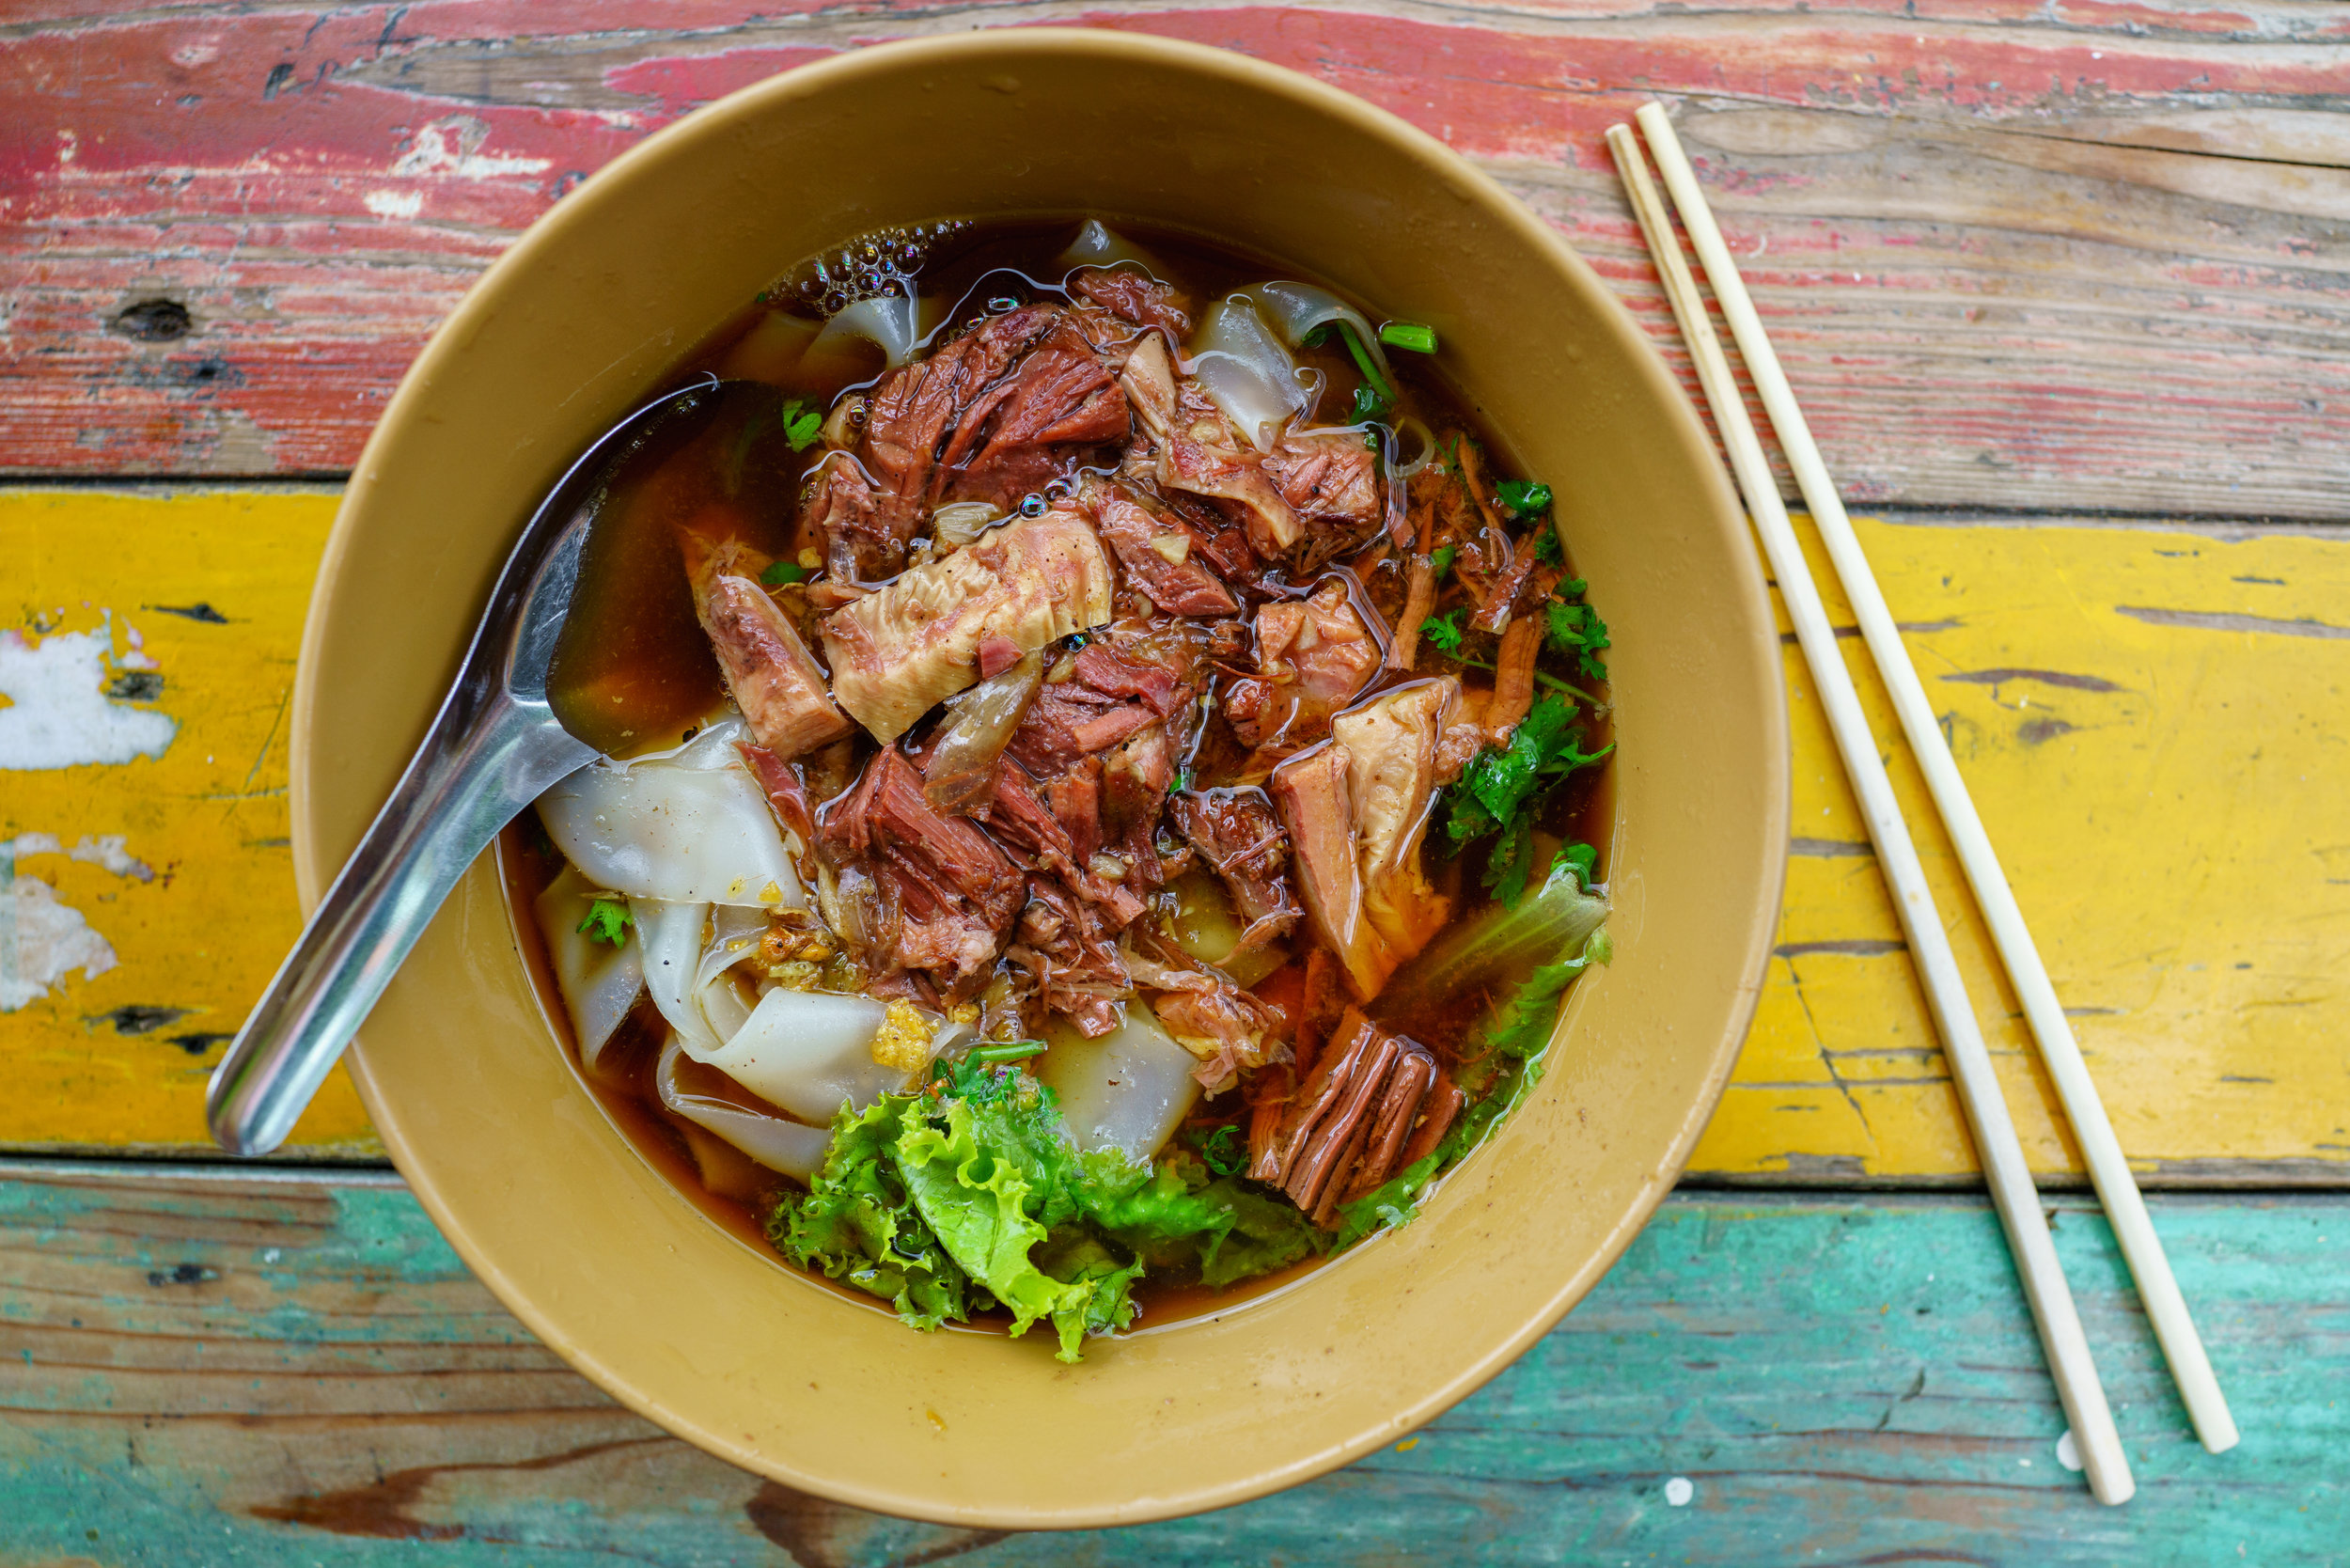 Beef noodle soup for lunch